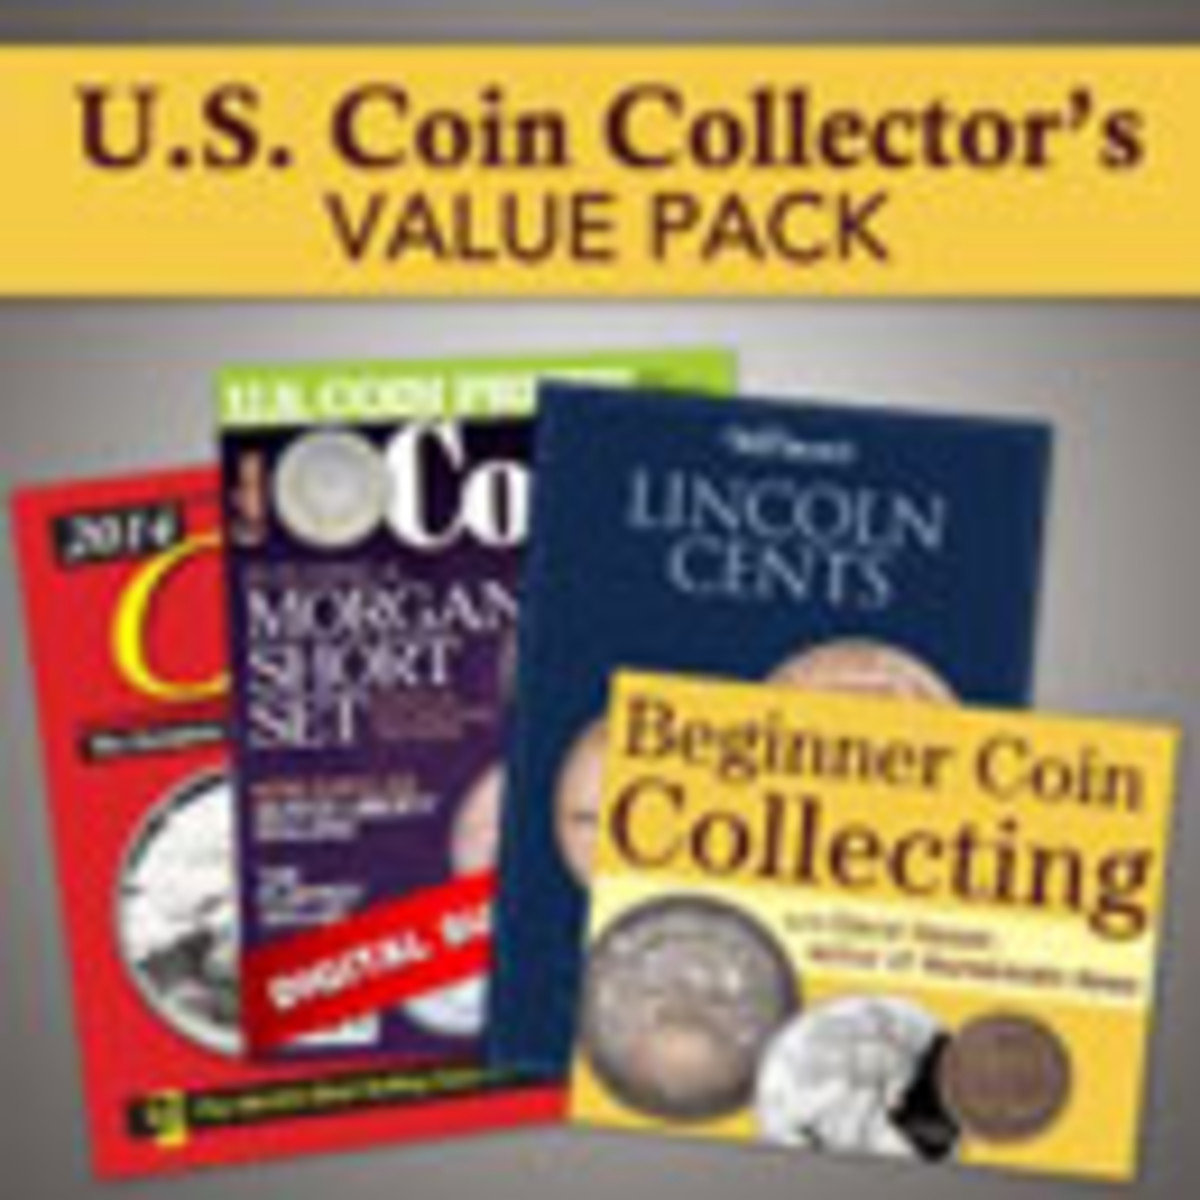 U.S. Coin Collector's Value Pack